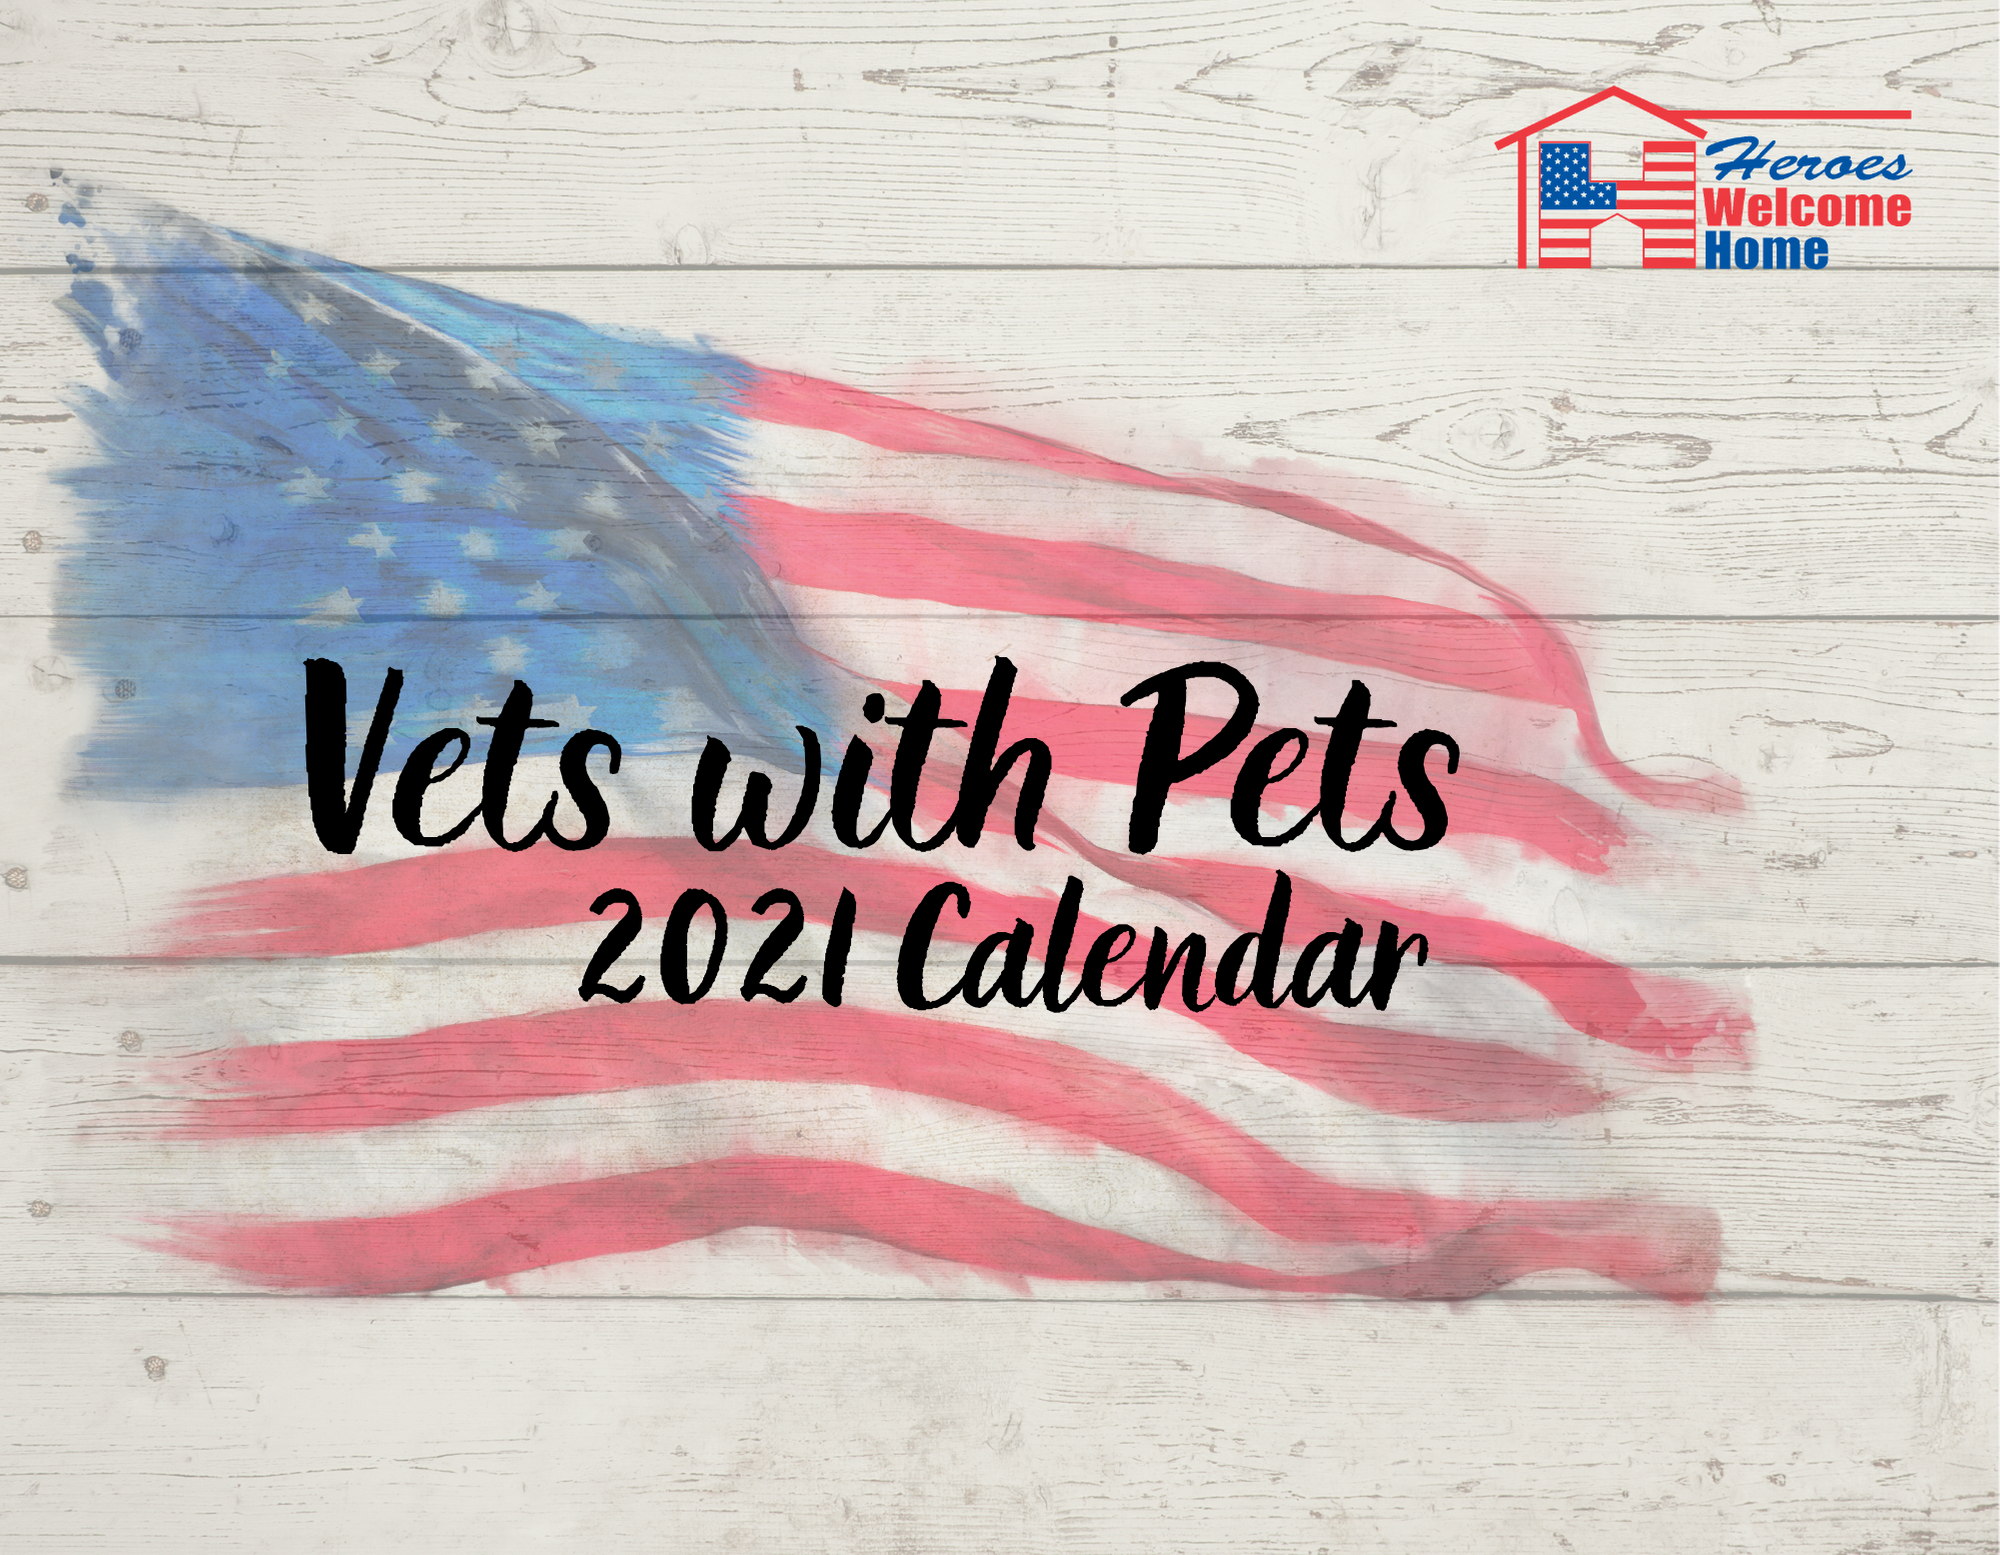 calendar front cover white board background and american flag text vets with pets 2021 calendar